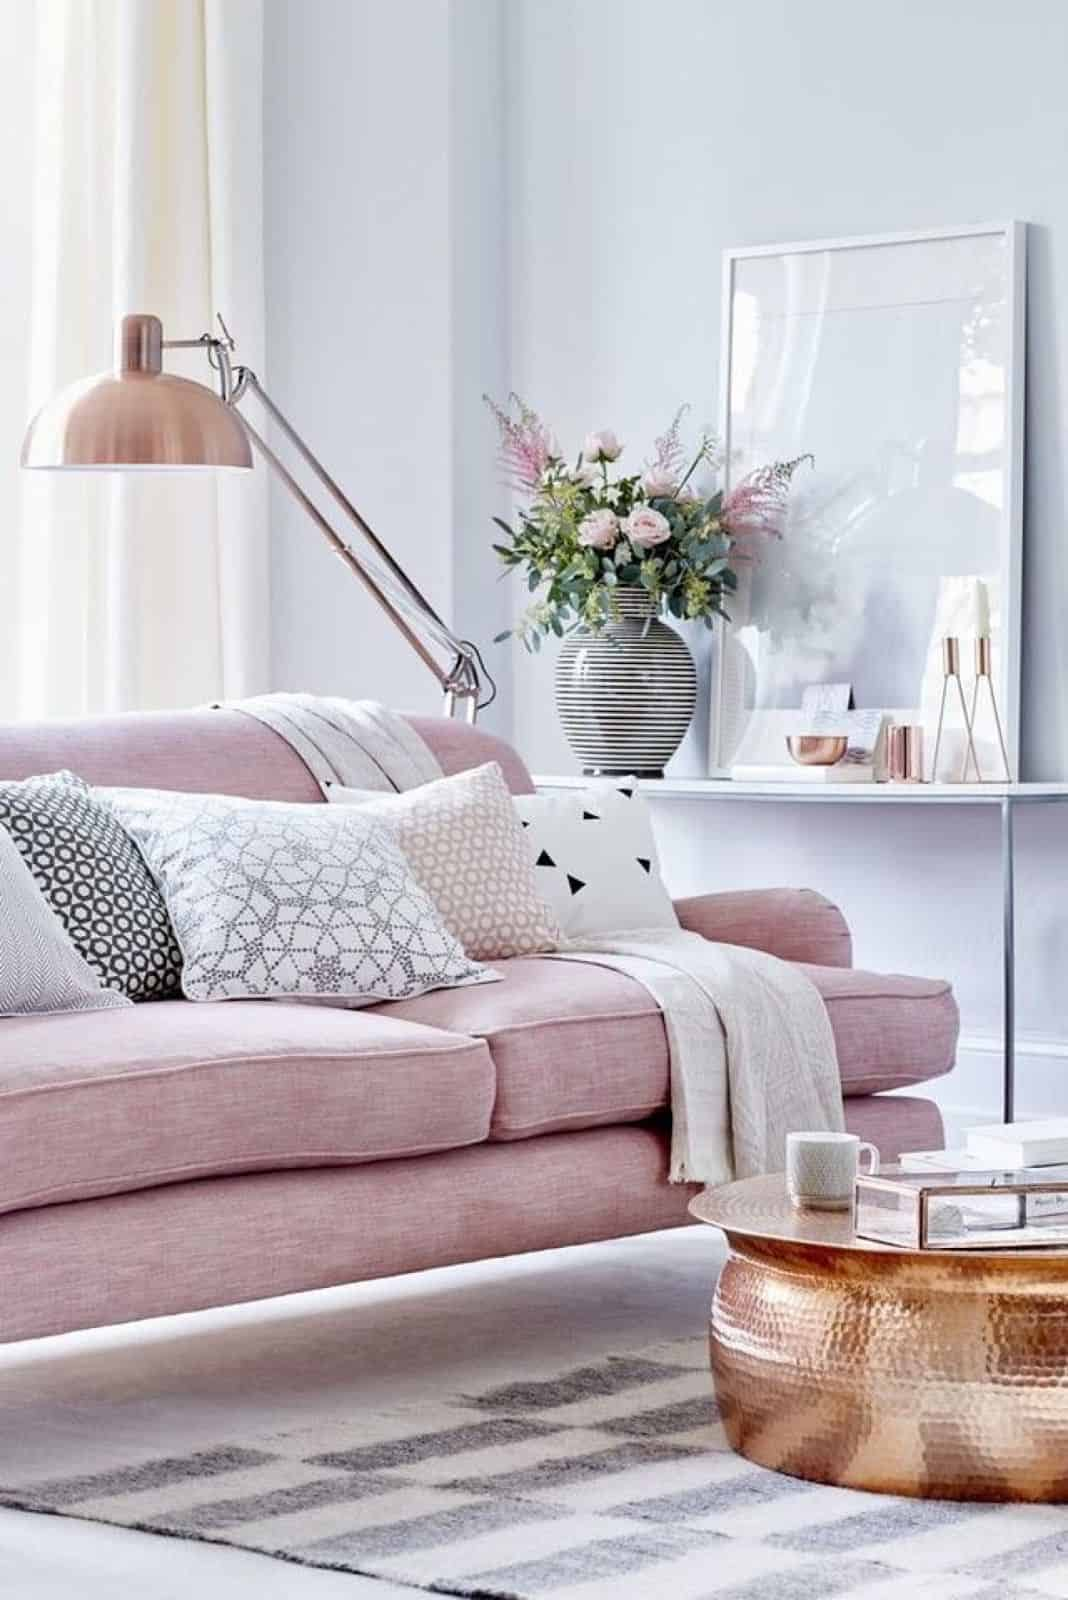 An excellent way to give your copper tones the ultimate spotlight is by pairing them with pink tones.